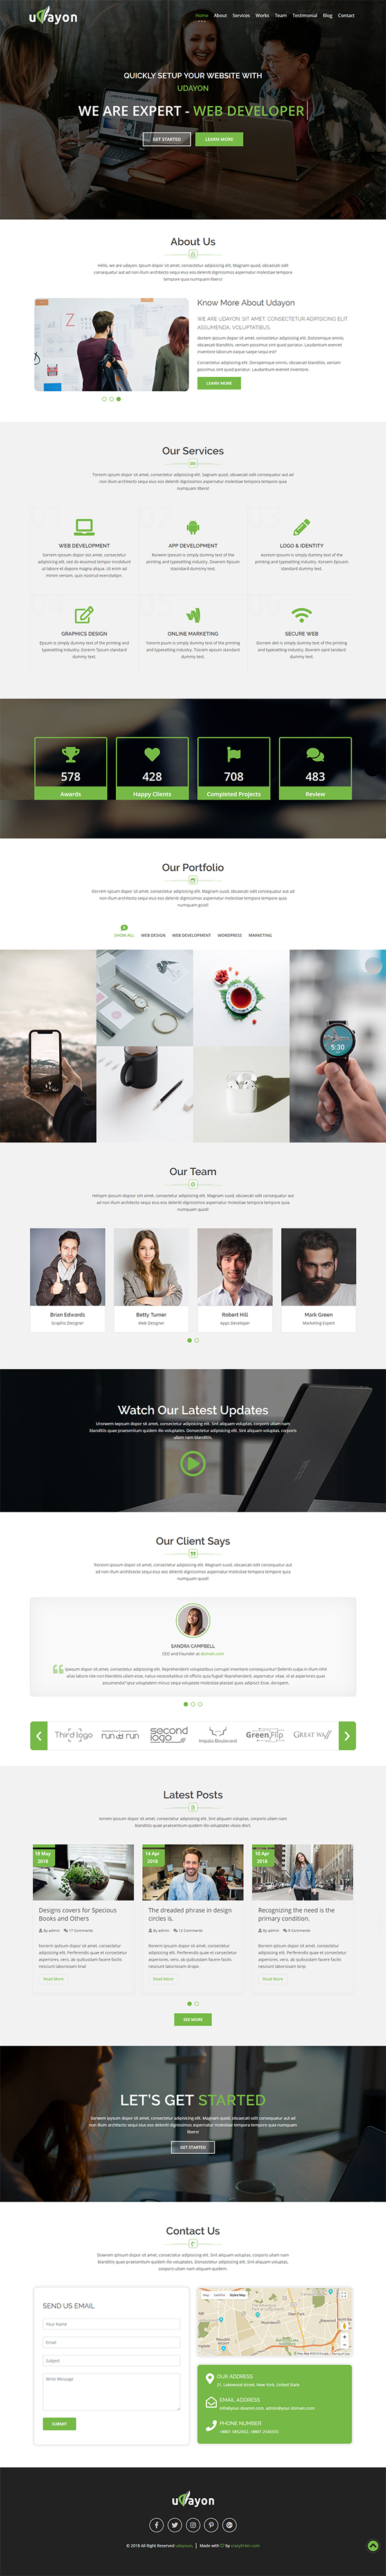 Udayon - Onepager Multipurpose Parallax Template